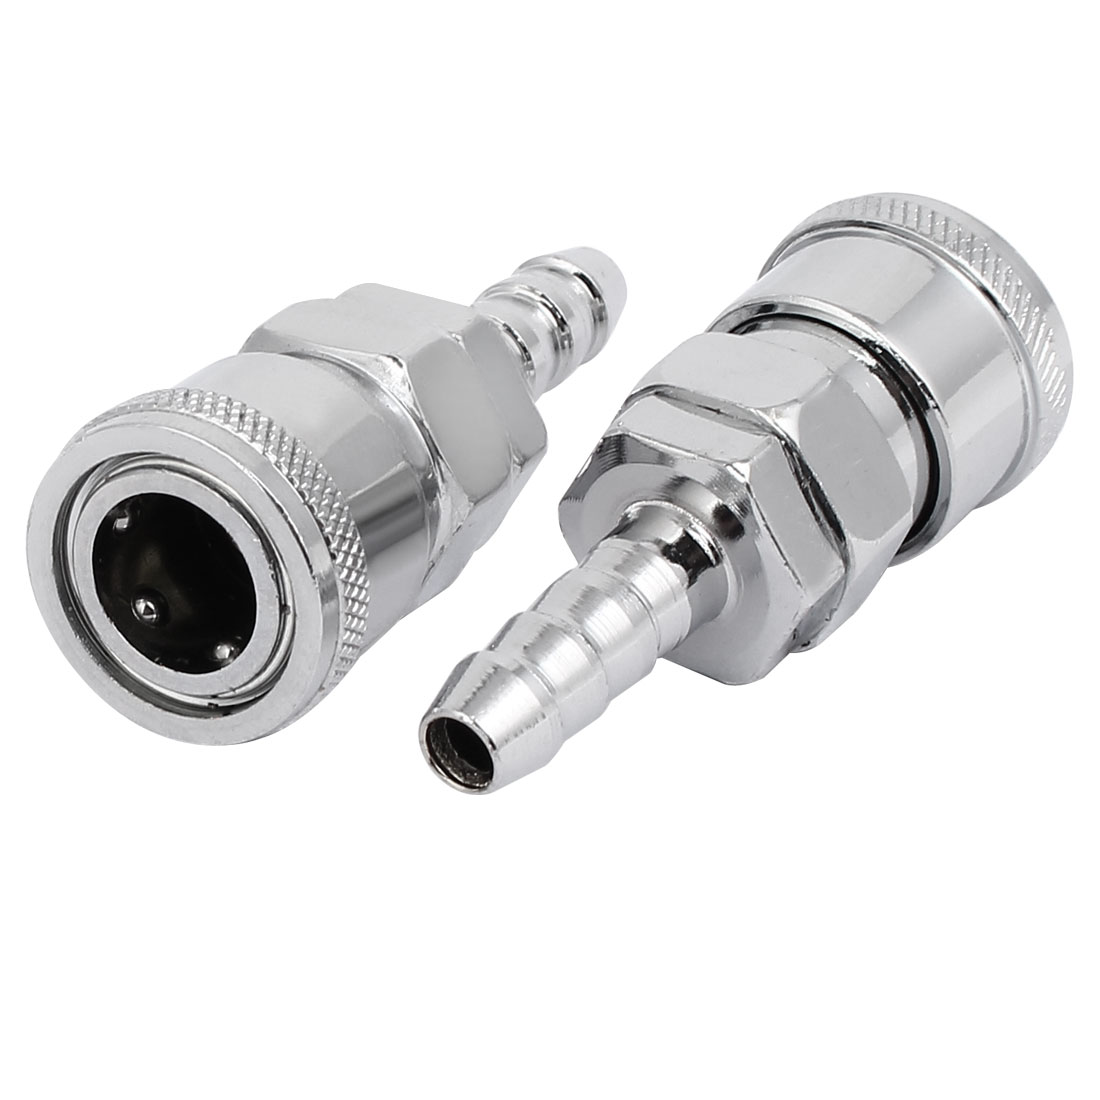 SH-20 Air Compressor Zinc Plated Quick Coupler 2PCS for 8mm Pipe Inner Dia